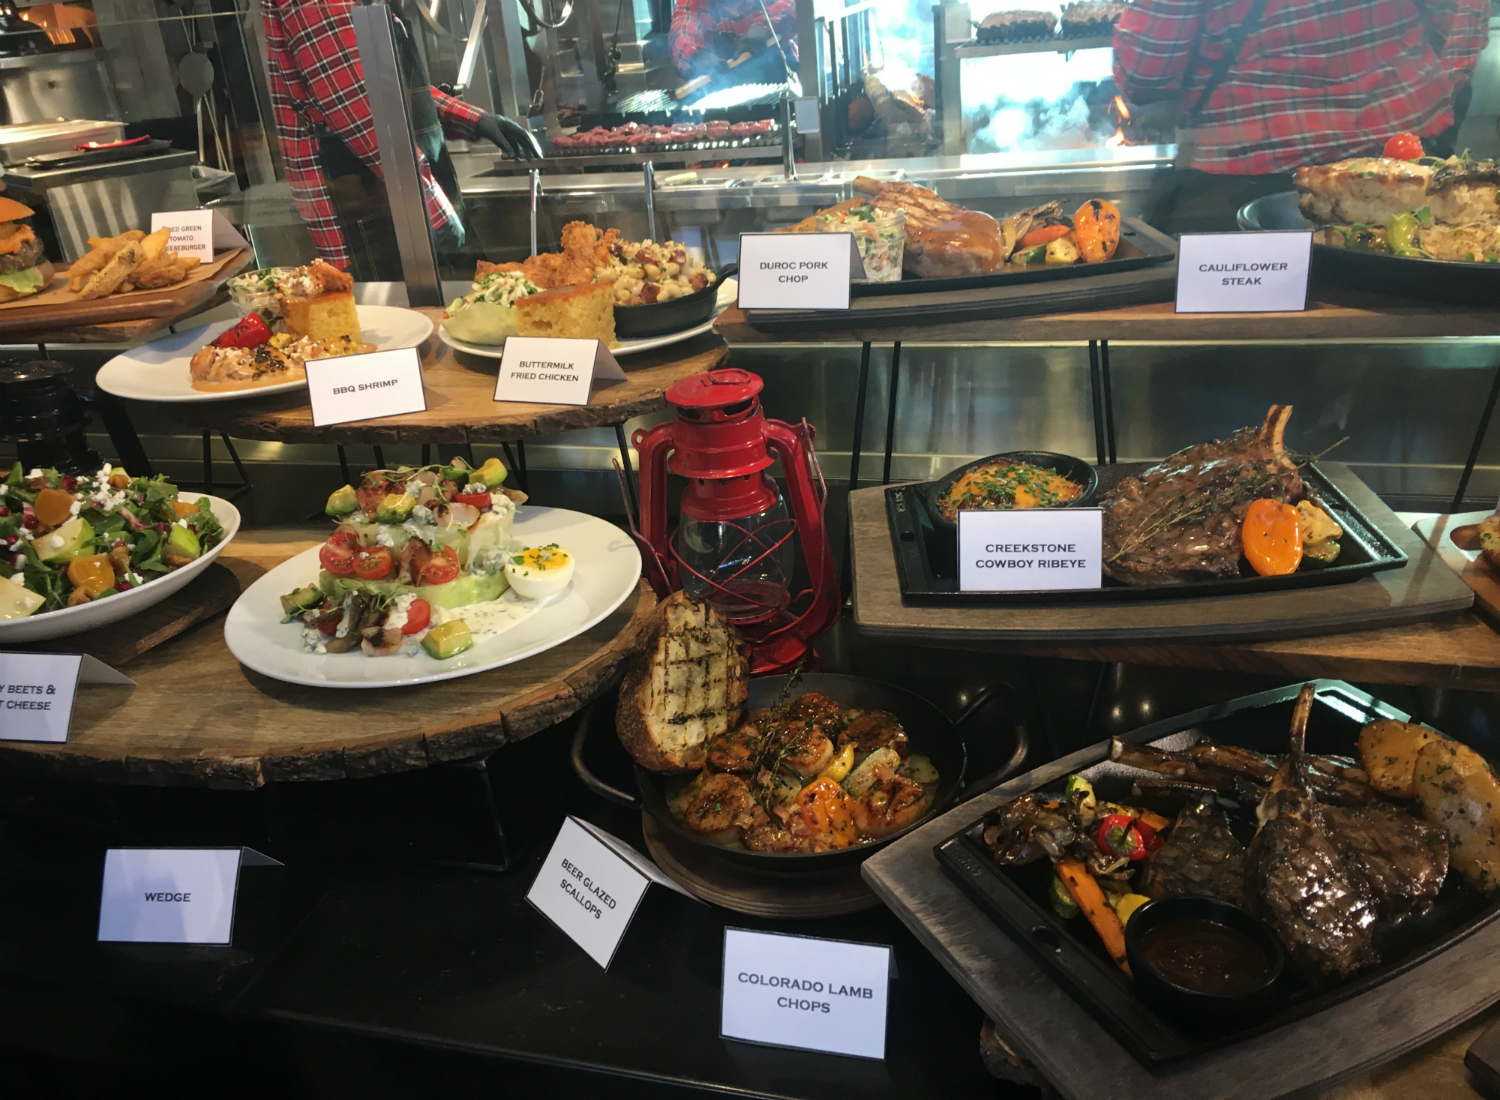 Bigfire had a number of entrees out on display at the media event.